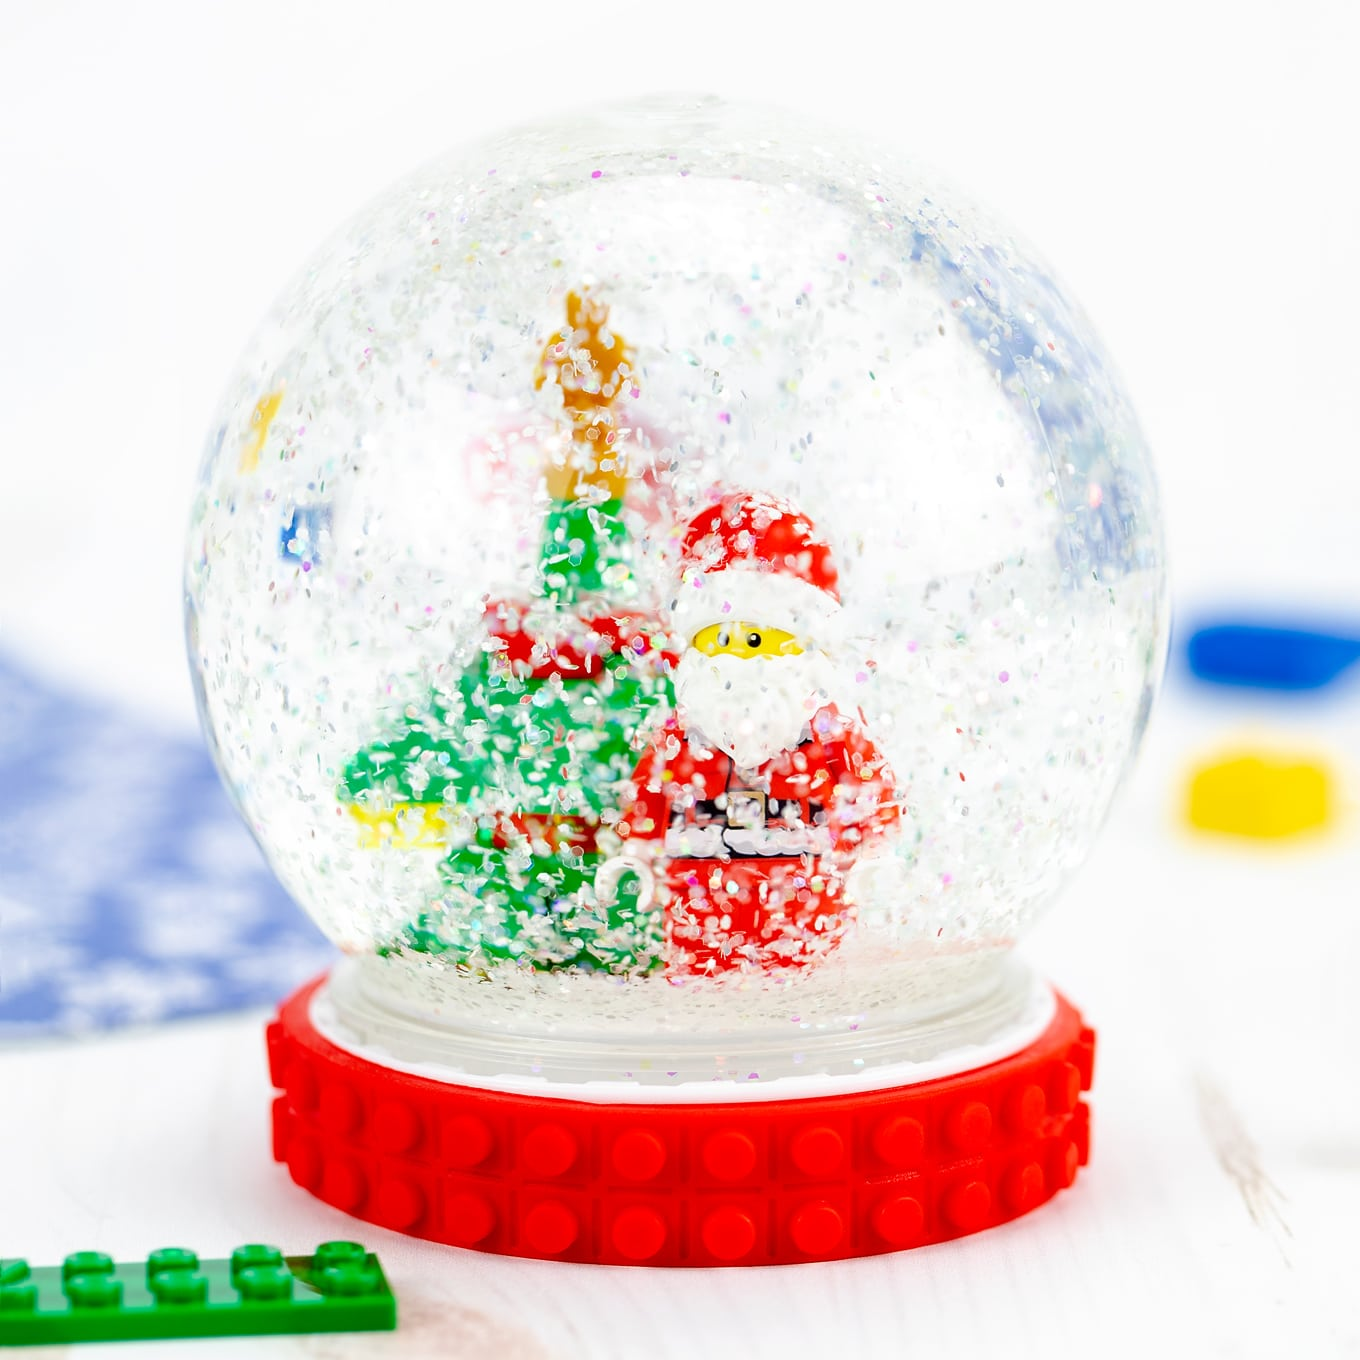 LEGO Santa and Christmas Tree Inside of a DIY Snow Globe